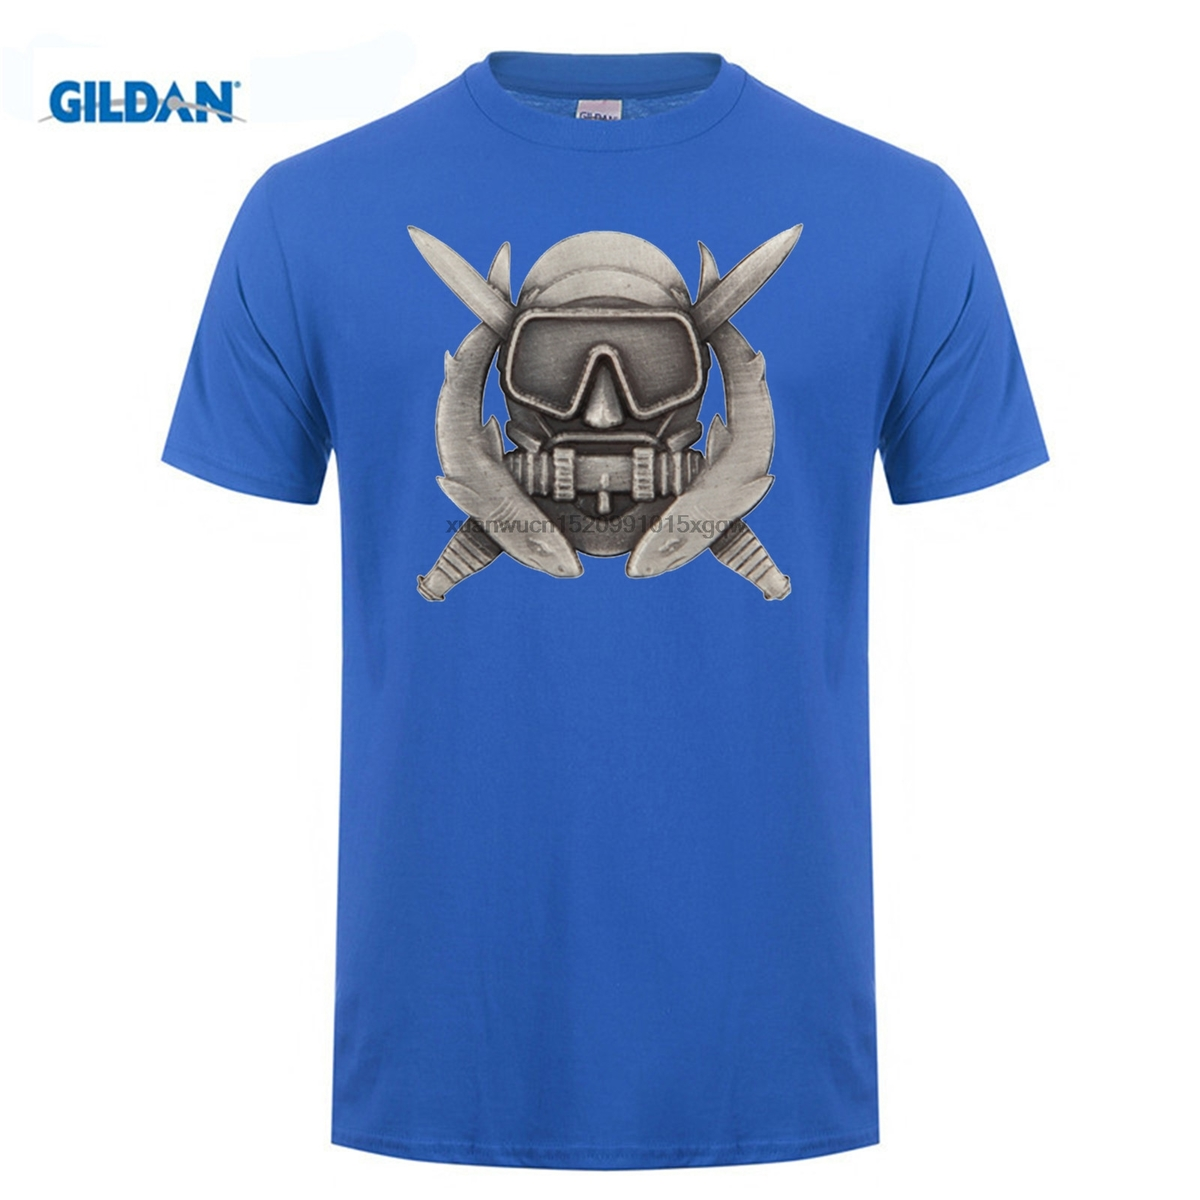 GILDAN New Short Sleeve Round Collar Famous tee cotton Combat Diver Best Friend black tshirt mens Hip Hop Topic O Neck Clothing in T Shirts from Men 39 s Clothing